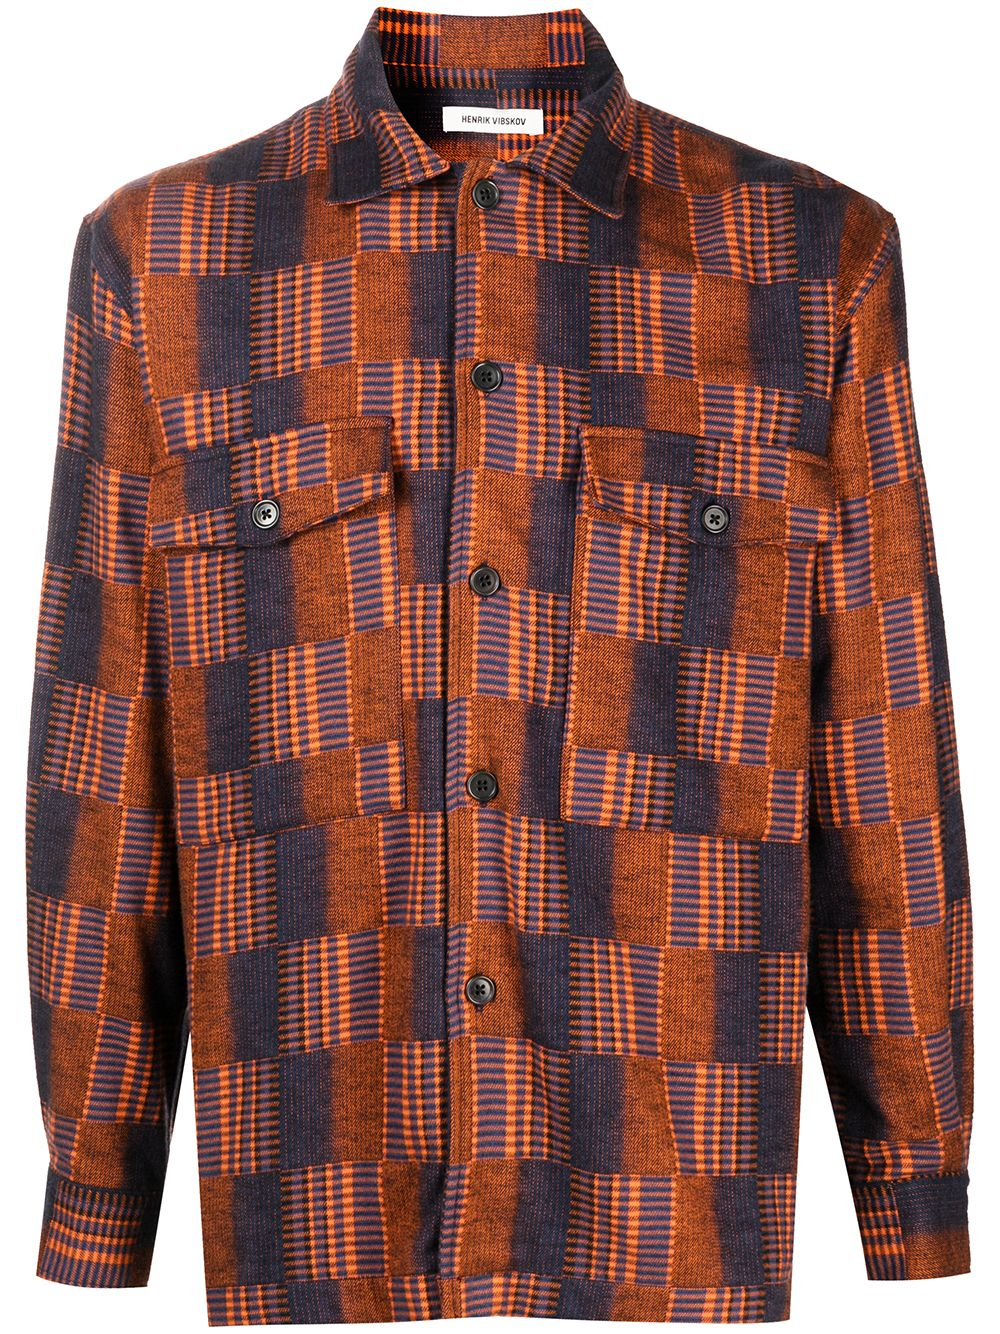 Henrik-Vibskov-Match-Box-Shirt-Dark-Orange